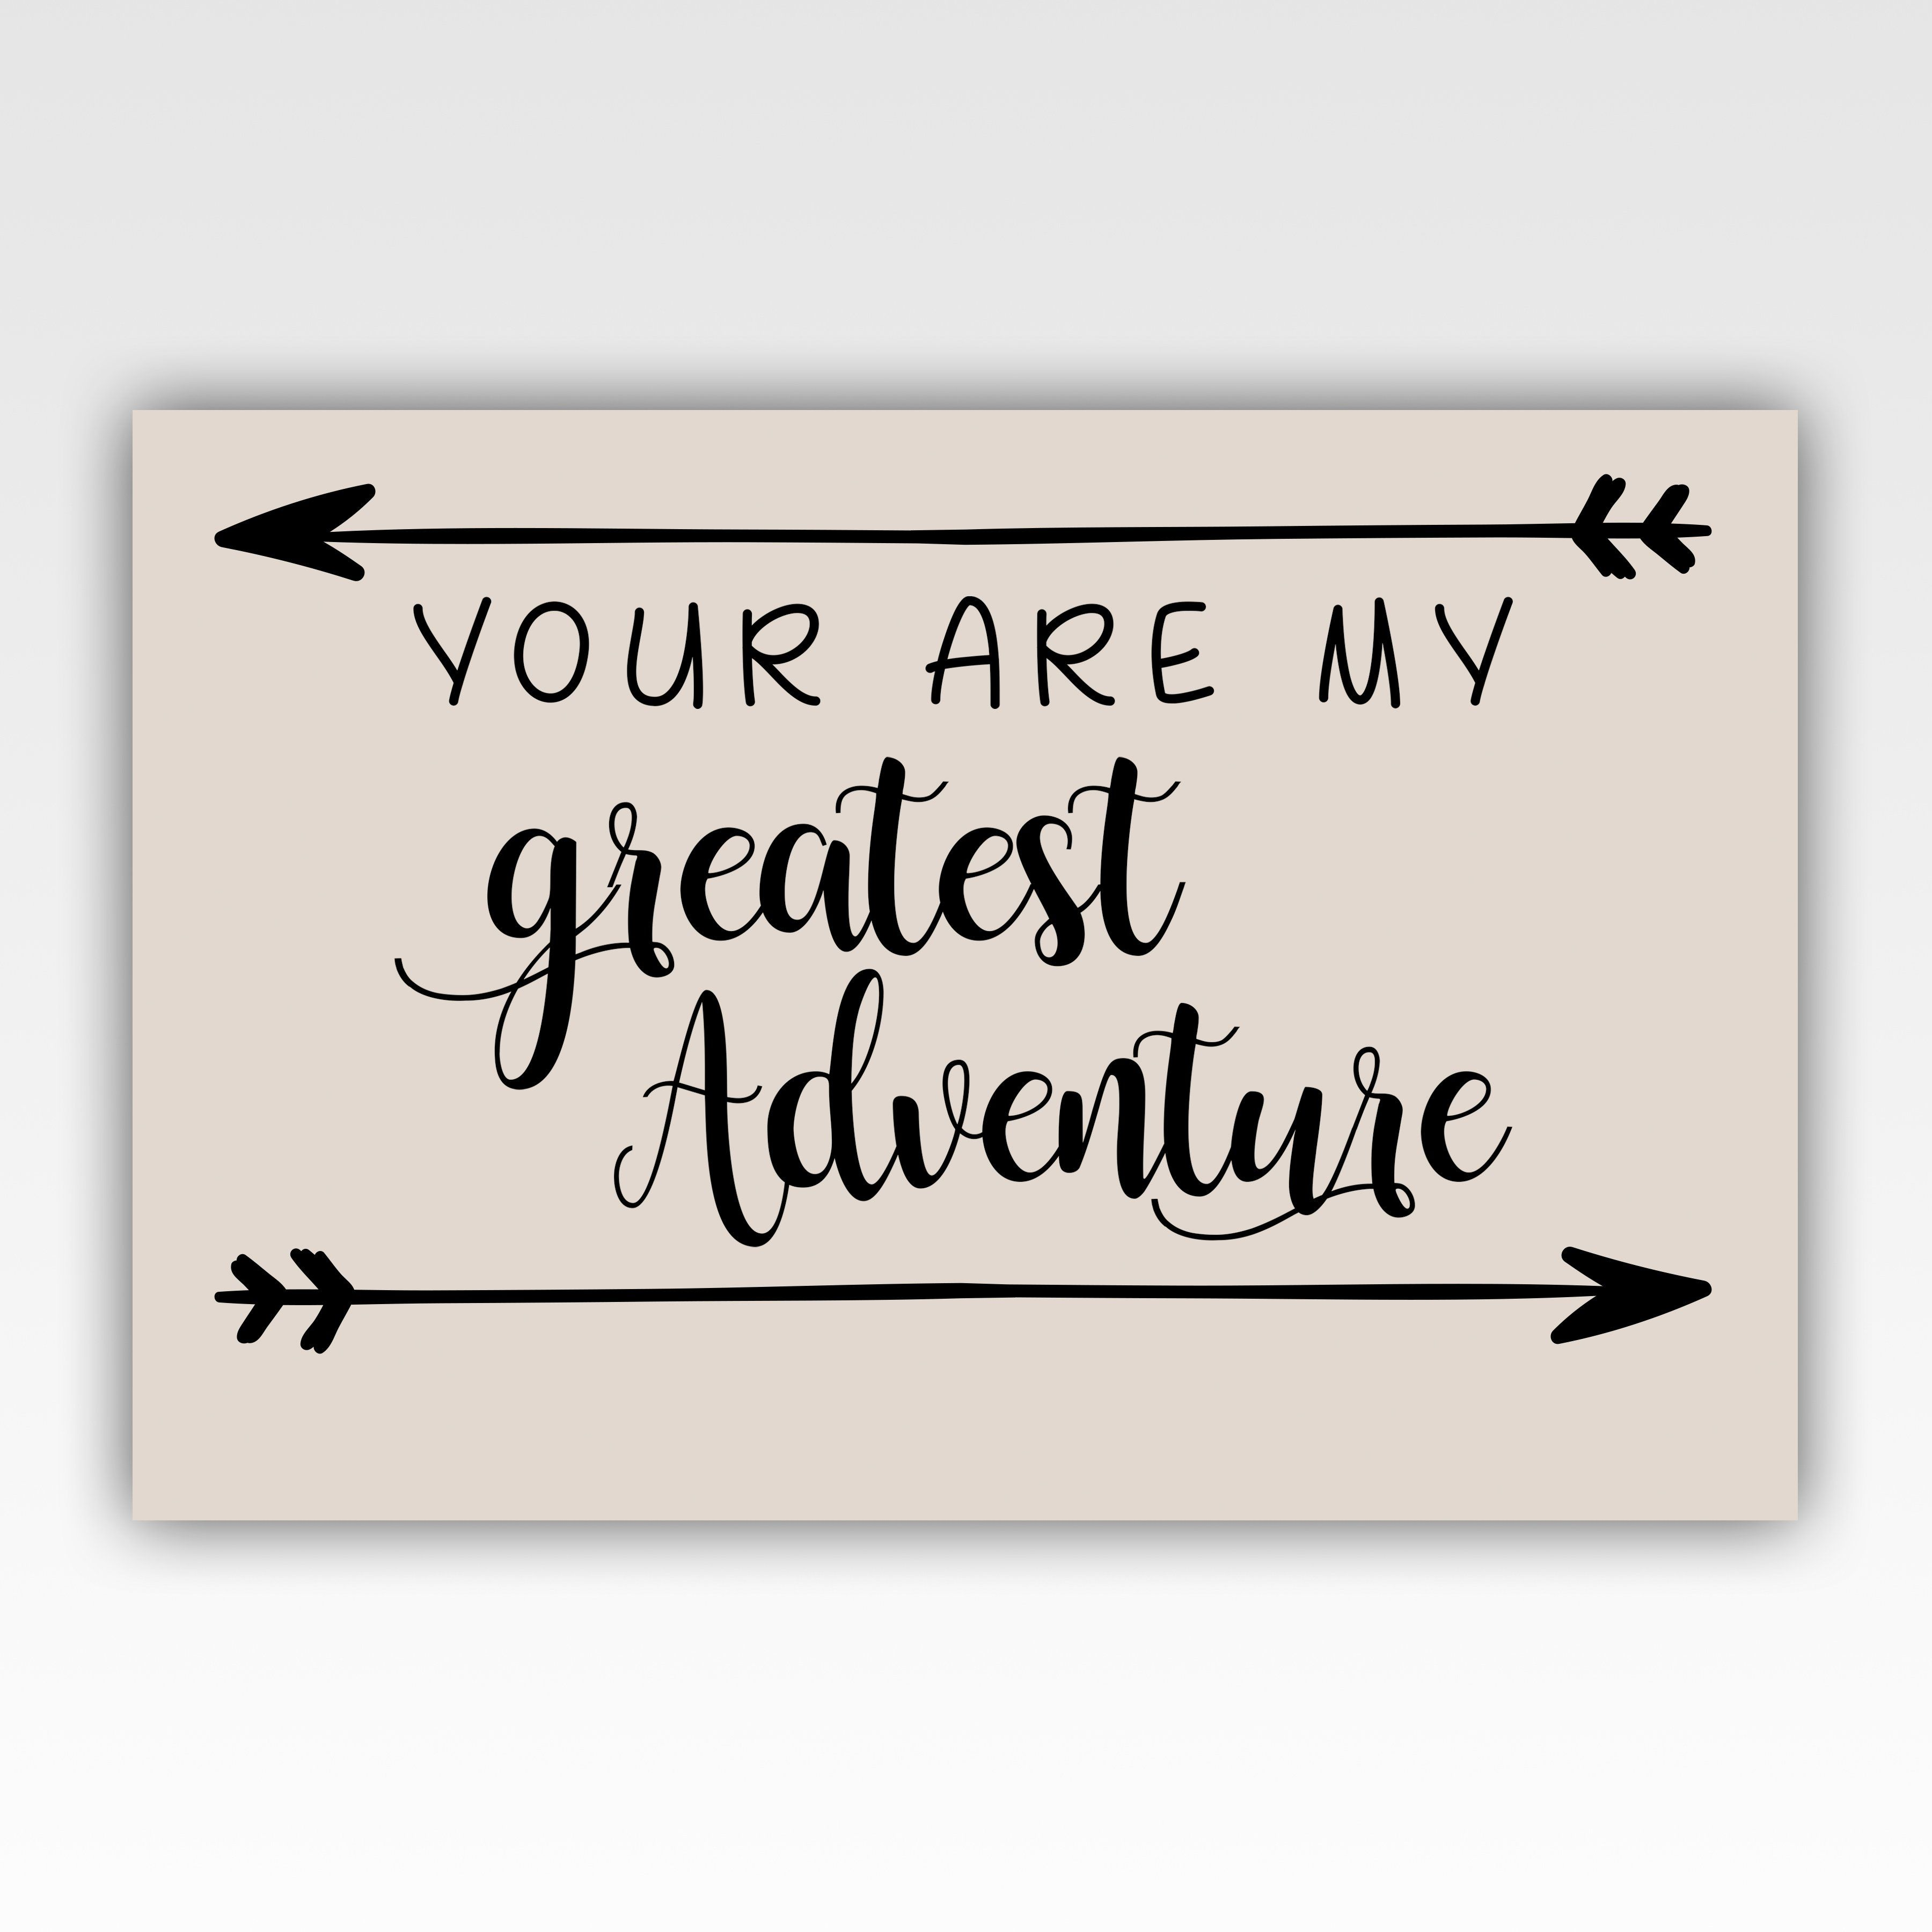 Personalized!! You Are My Greatest Adventure Romantic Couple Gifts Canvas Wrap Wall Art Decor Print